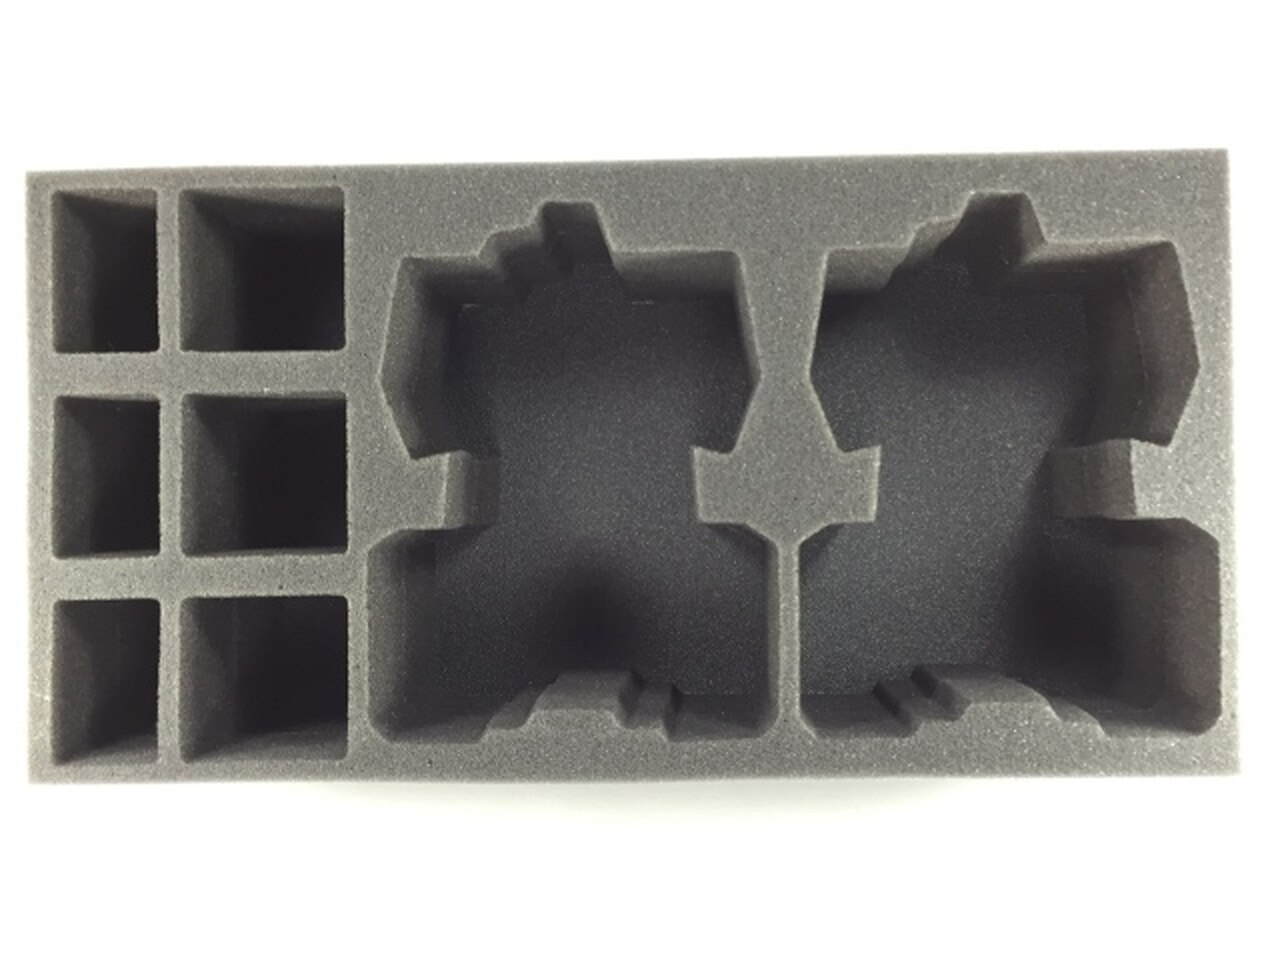 Battlefoam: WH40K: Tau: 2 Devilfish 3 Crisis Suit 3 Stealth Suit Foam Tray (BFM-4)